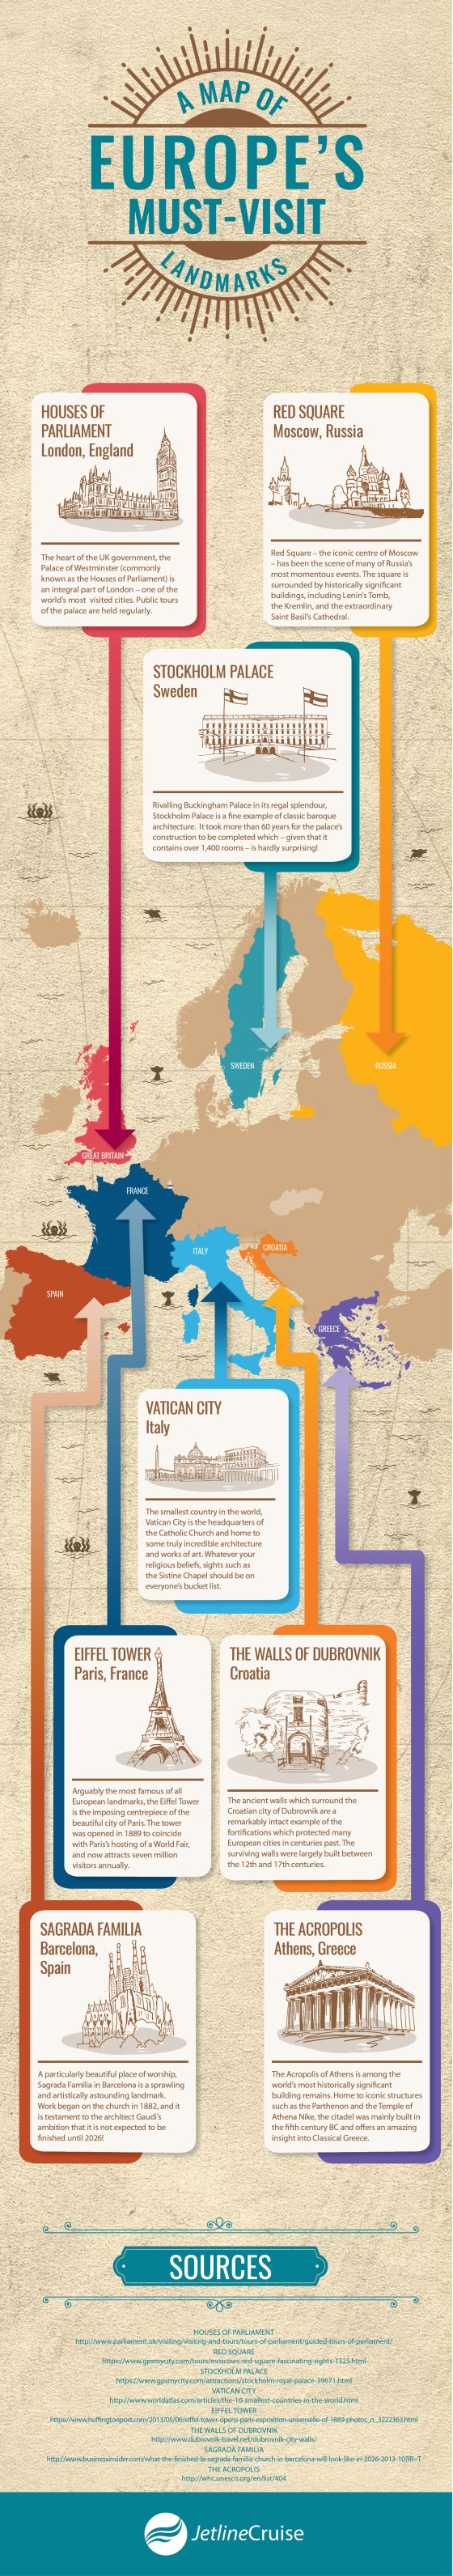 Infographic : A map of Europe's must-visit landmarks